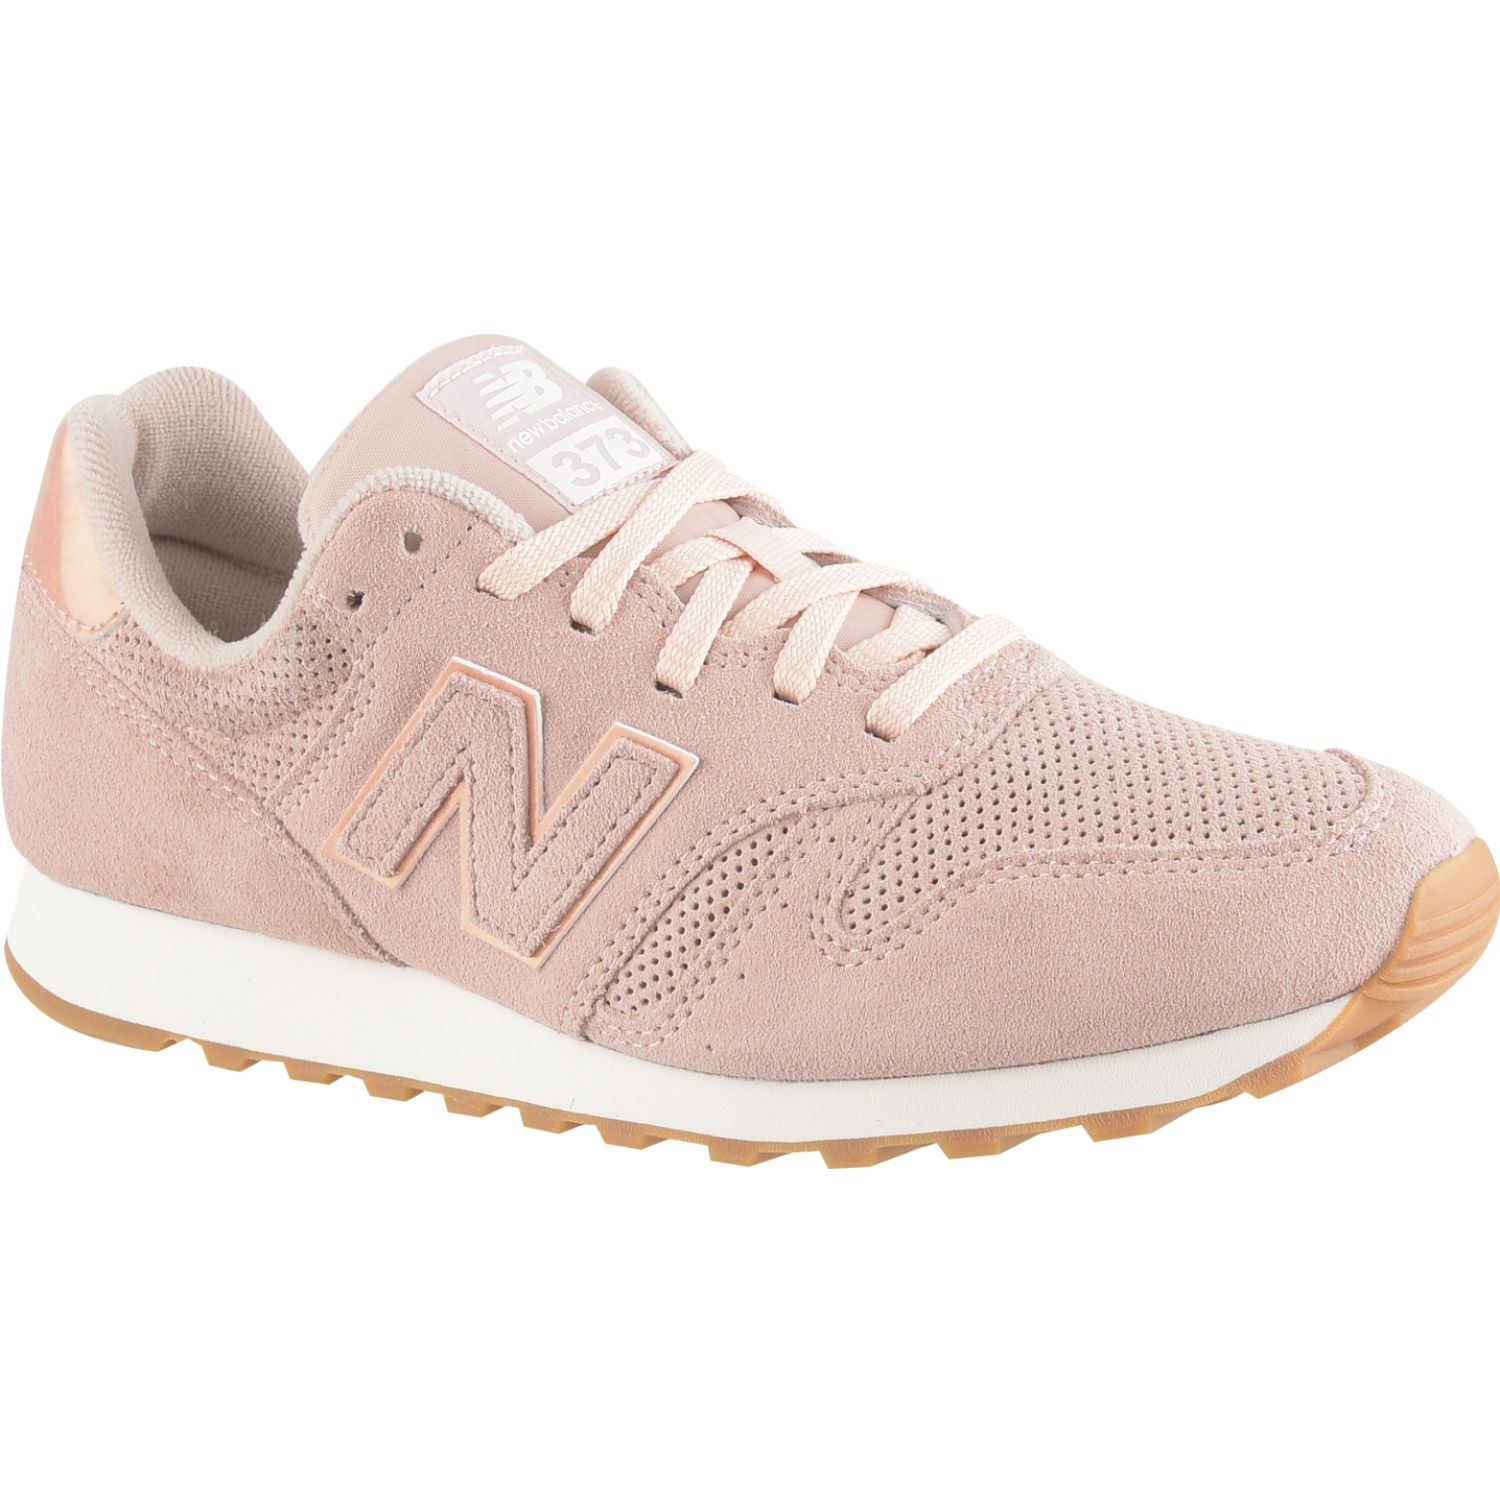 New Balance 373 Rosado Walking